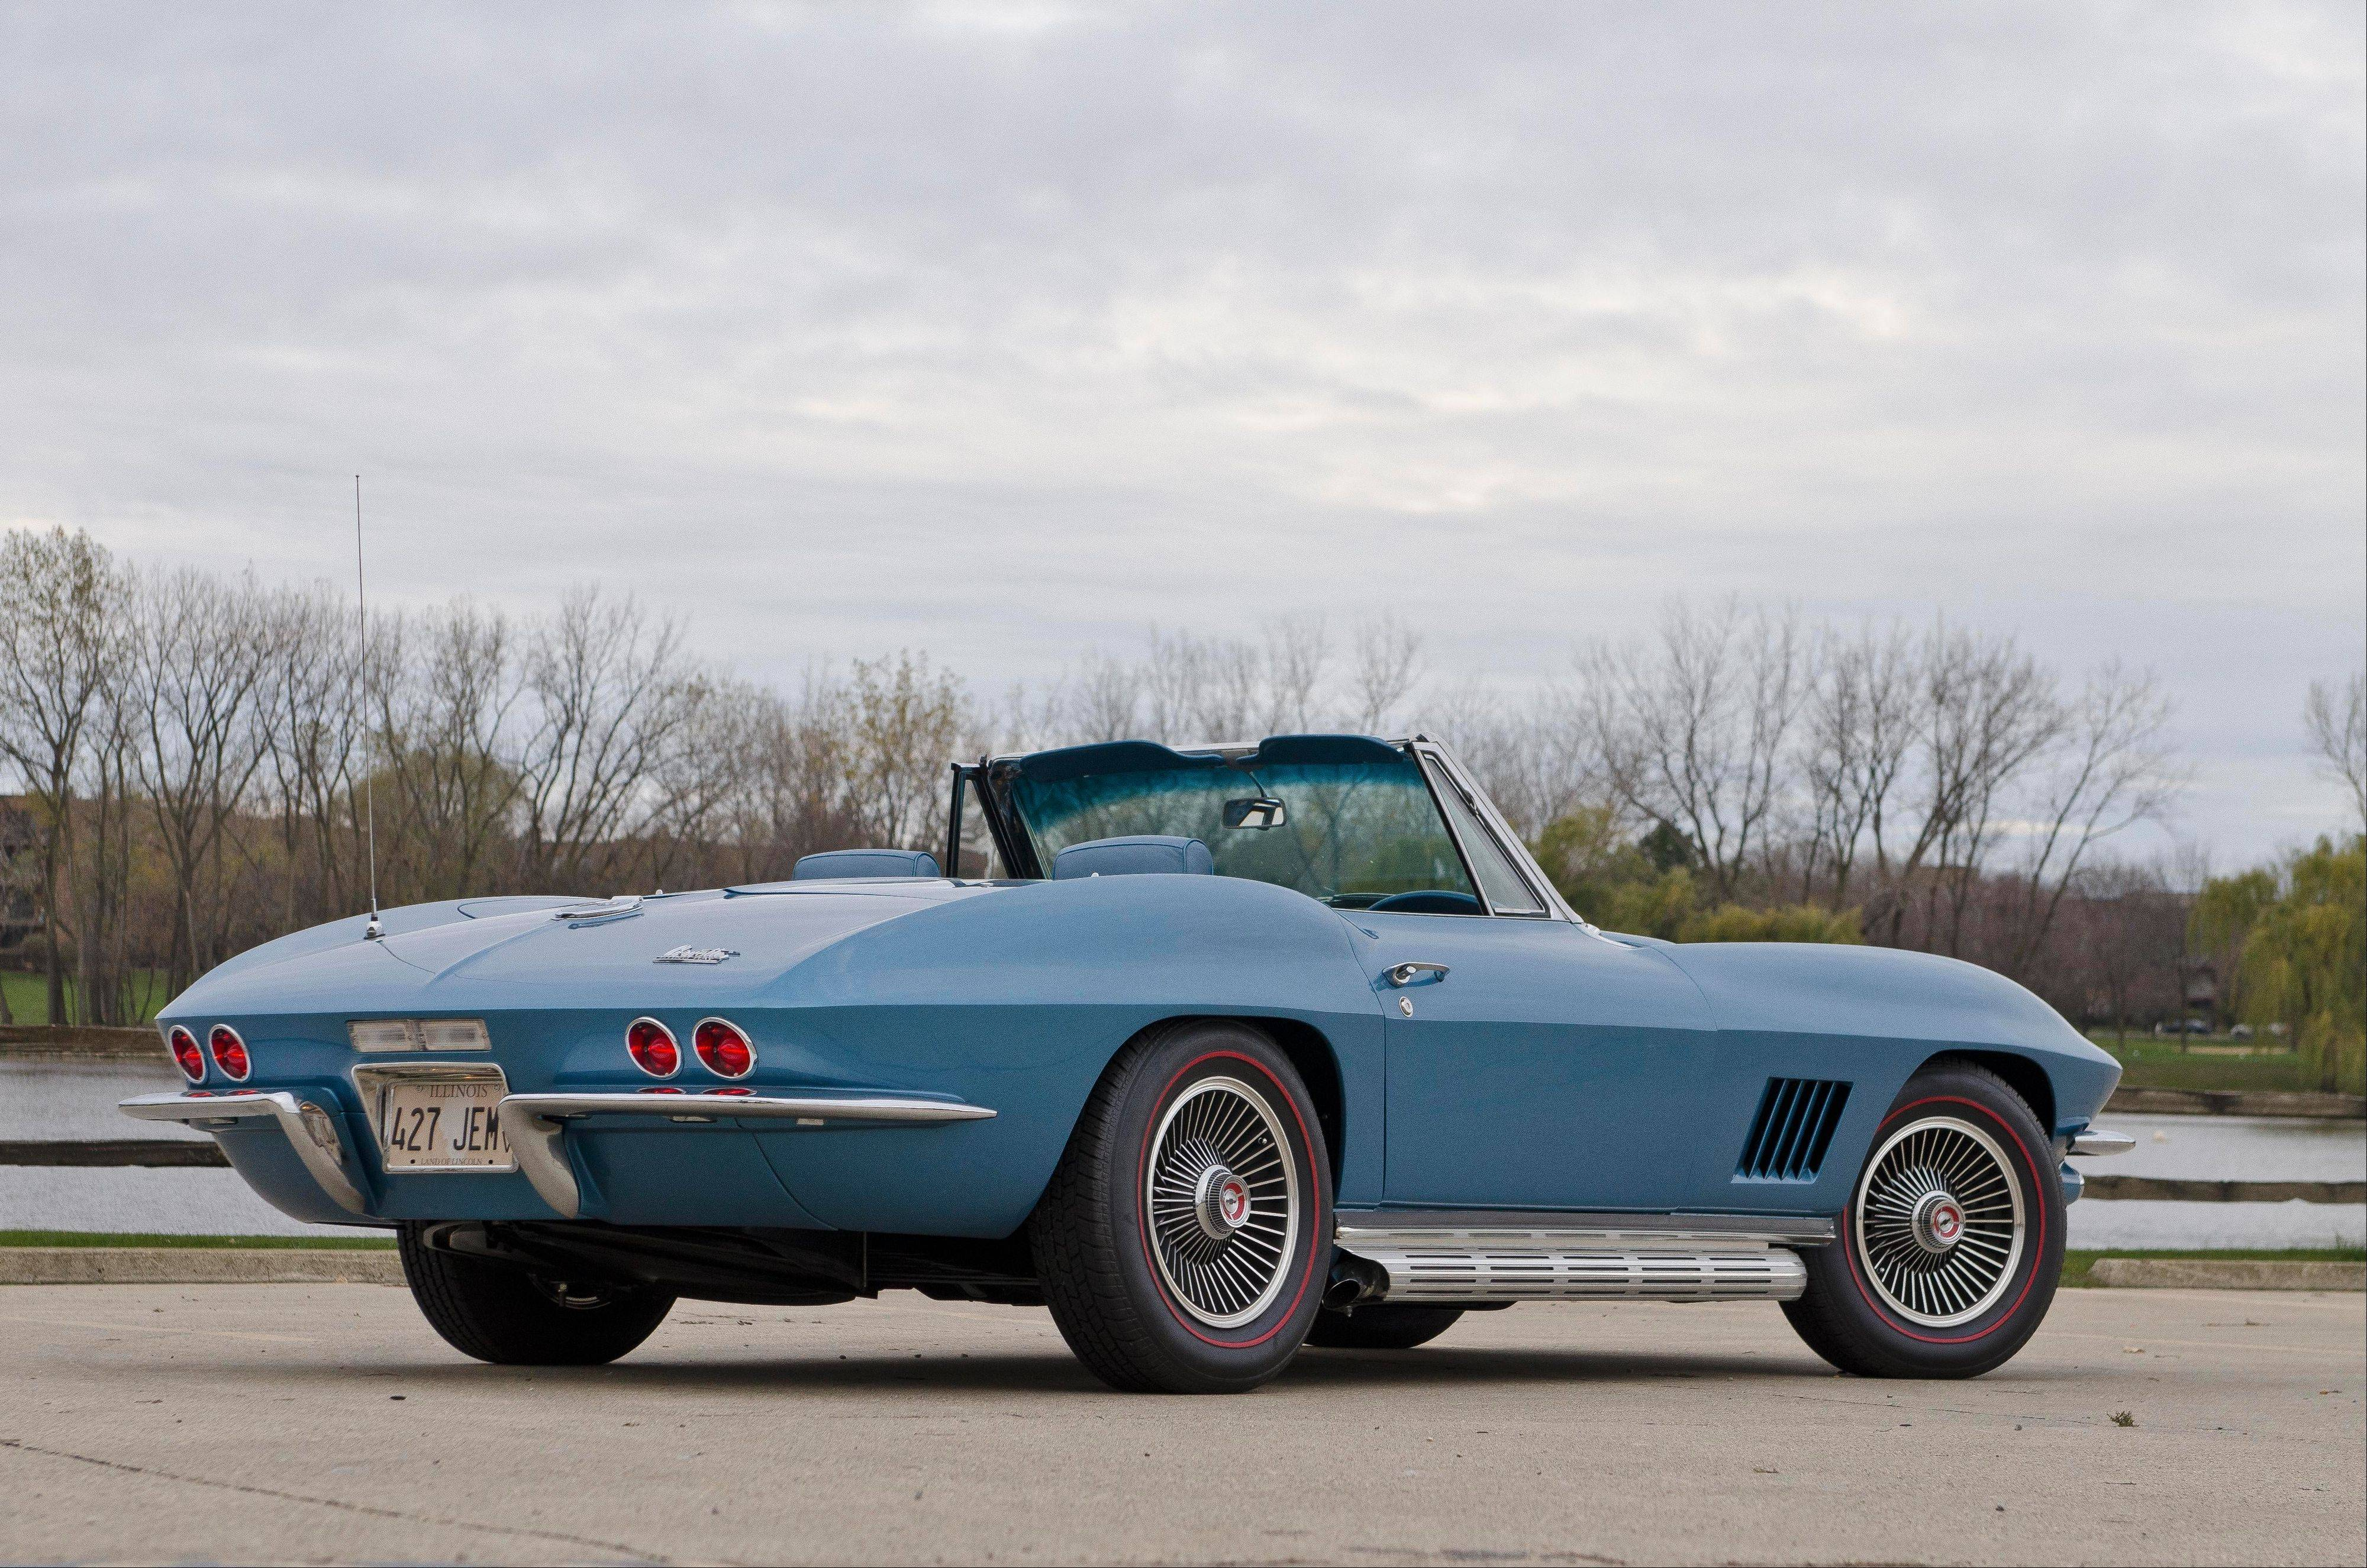 The 1967 Corvette's distinct side-exiting exhausts have been retained.